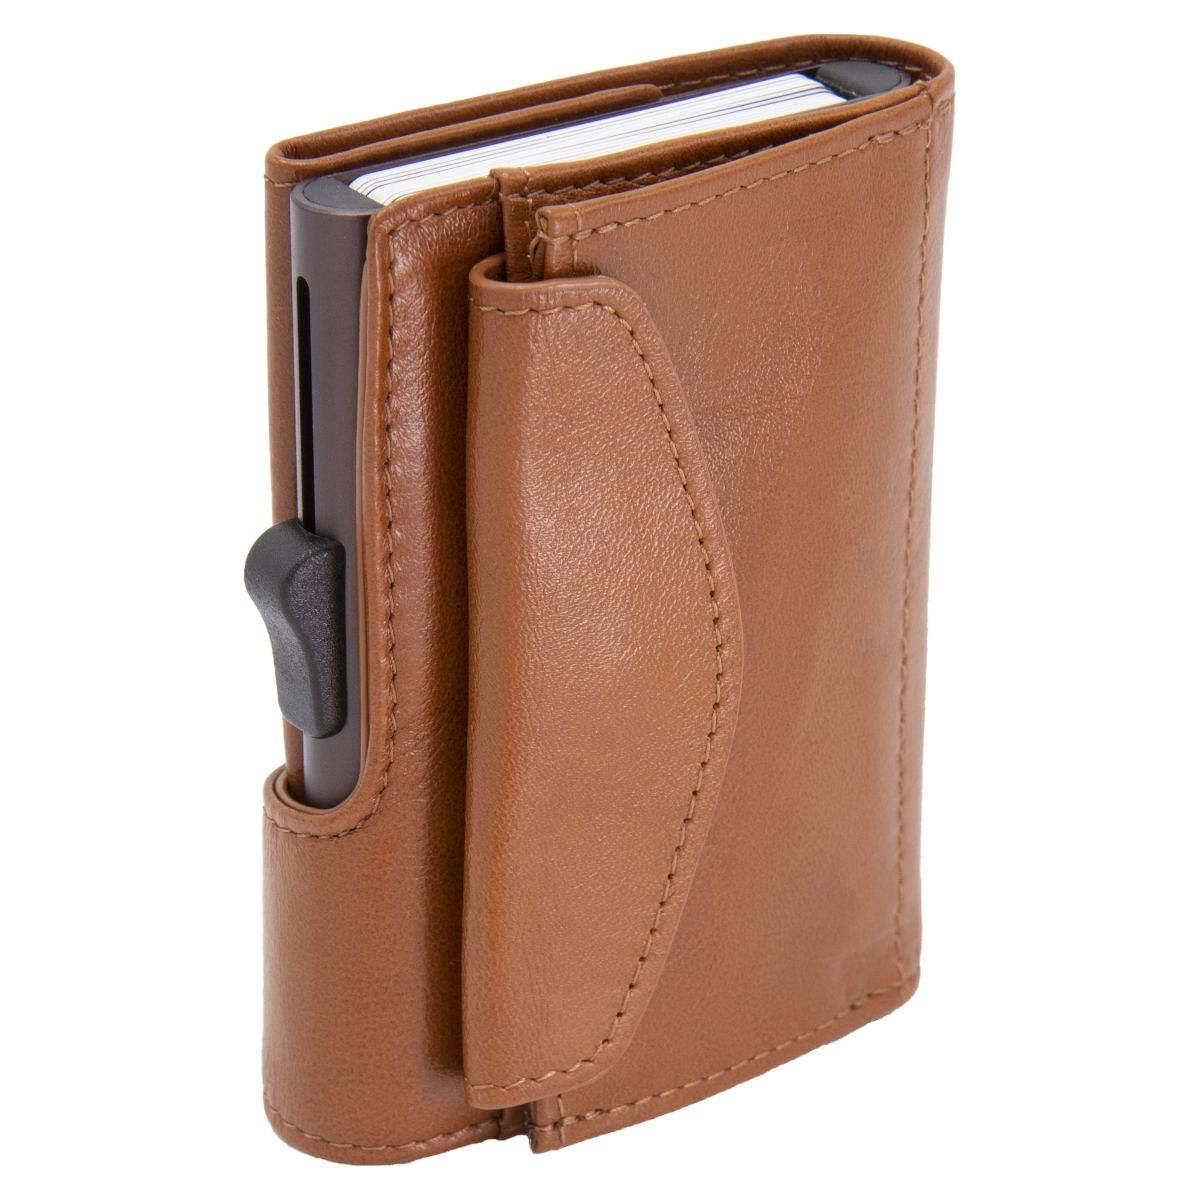 XL Aluminum Wallet with Genuine Leather and Coins Pocket - Chestnut